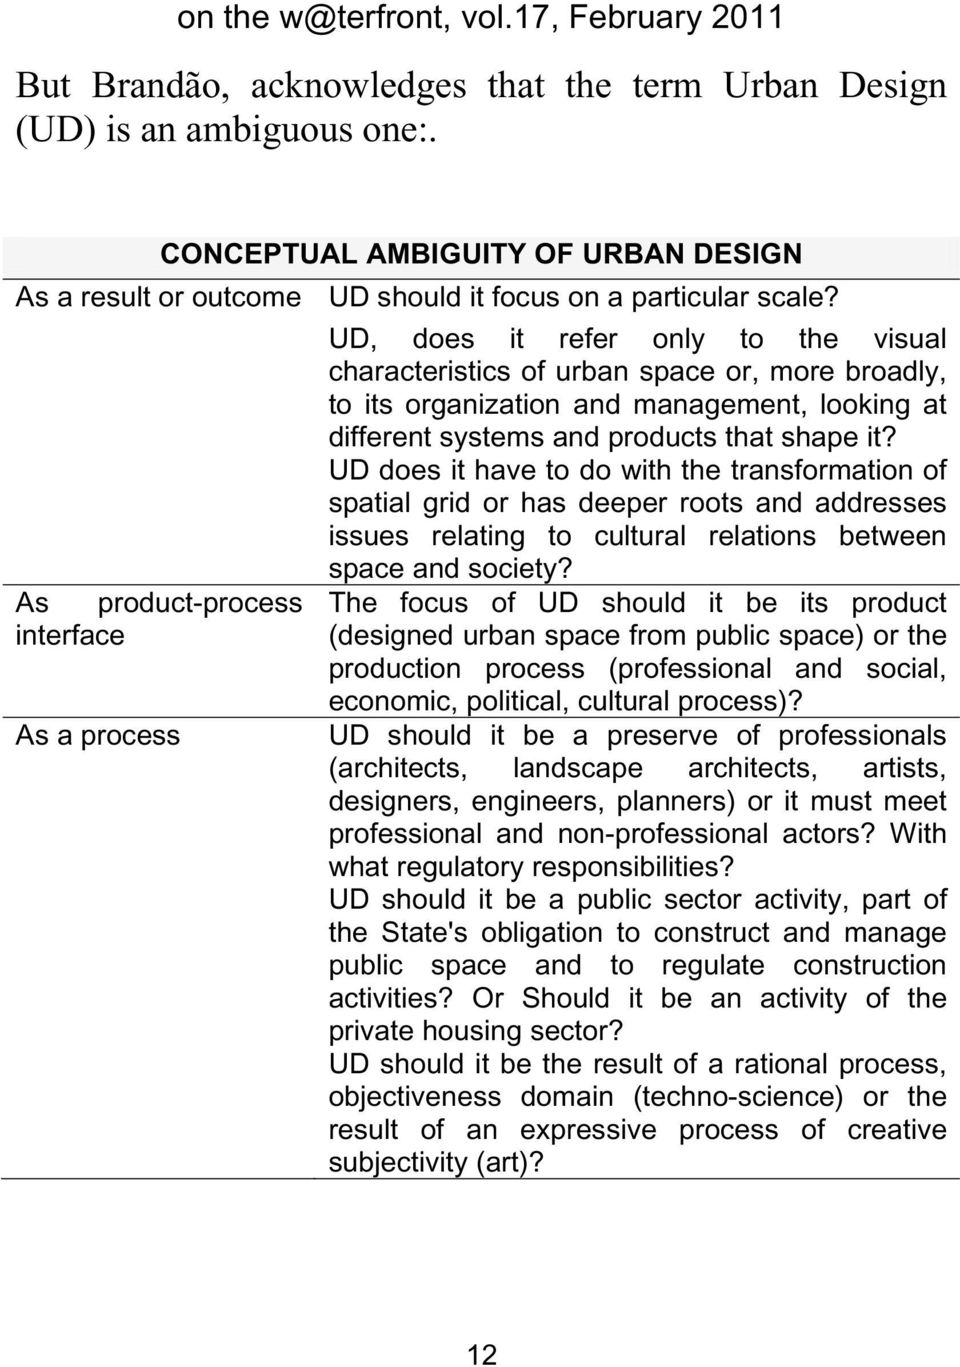 UD does it have to do with the transformation of spatial grid or has deeper roots and addresses issues relating to cultural relations between space and society?